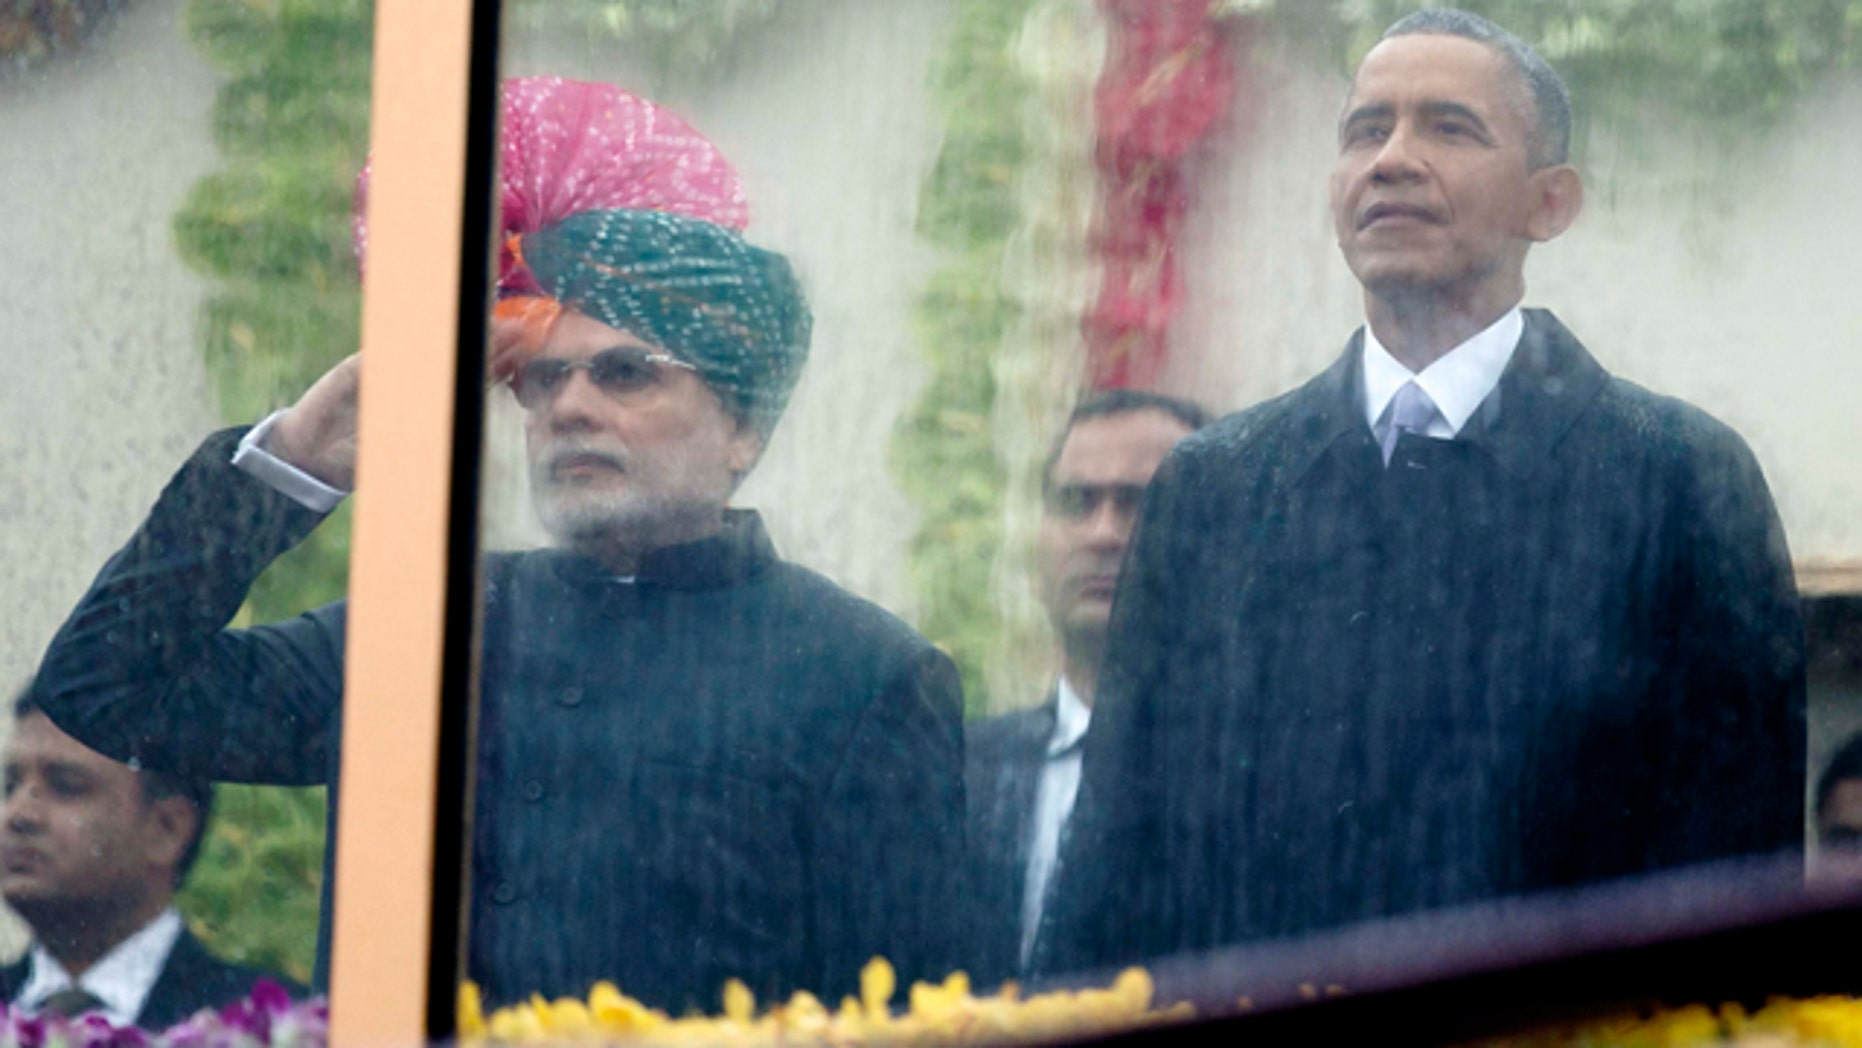 Jan. 26, 2015: Indian Prime Minister Narendra Modi, left, and U.S. President Barack Obama, right, look out through rain covered protective glass to watch the Republic Day Parade in New Delhi. (AP Photo/Carolyn Kaster)